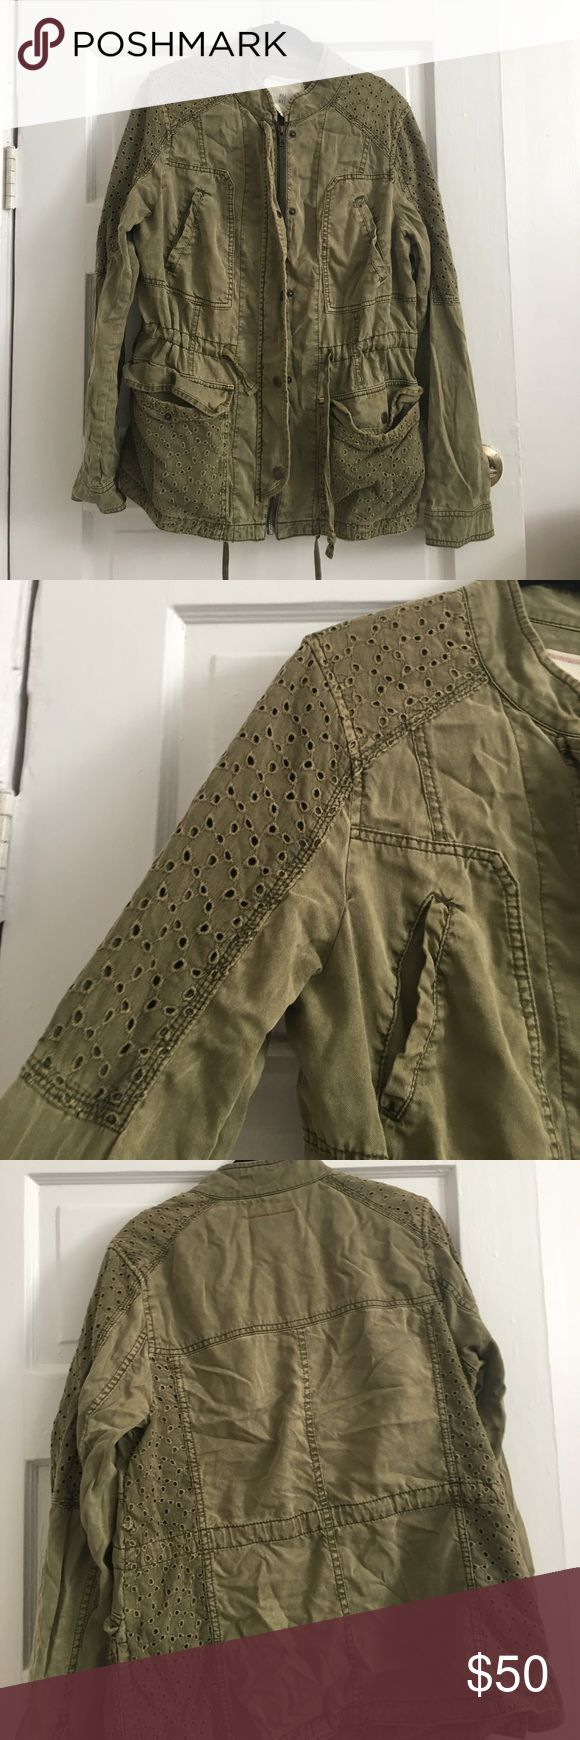 Anthropologie army jacket w/ stitching detail Cute twist on the classic army green canvas jacket. Stitching detail on shoulder and pockets. Love this jacket but own too many army green jackets 😳 Anthropologie Jackets & Coats Utility Jackets